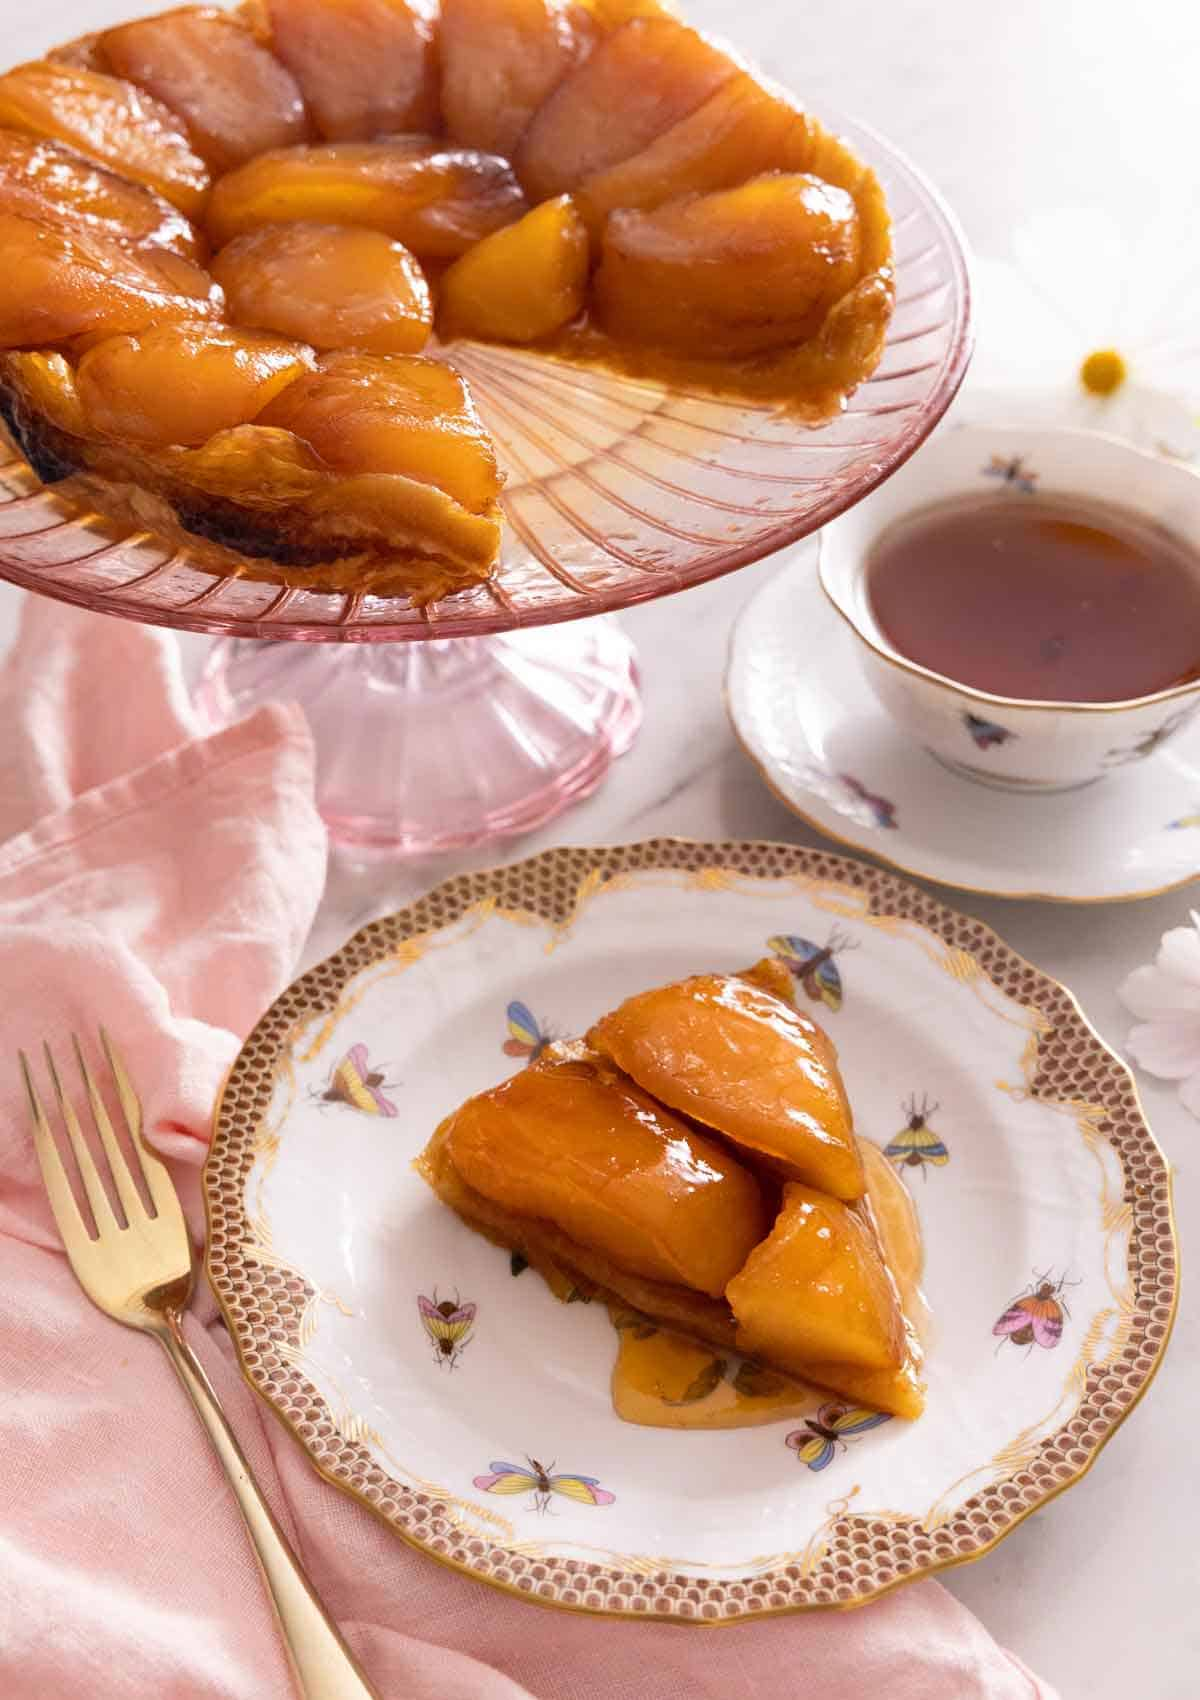 A slice of tarte Tatin on a plate in front of a cake stand with the rest of the Tatin behind it.